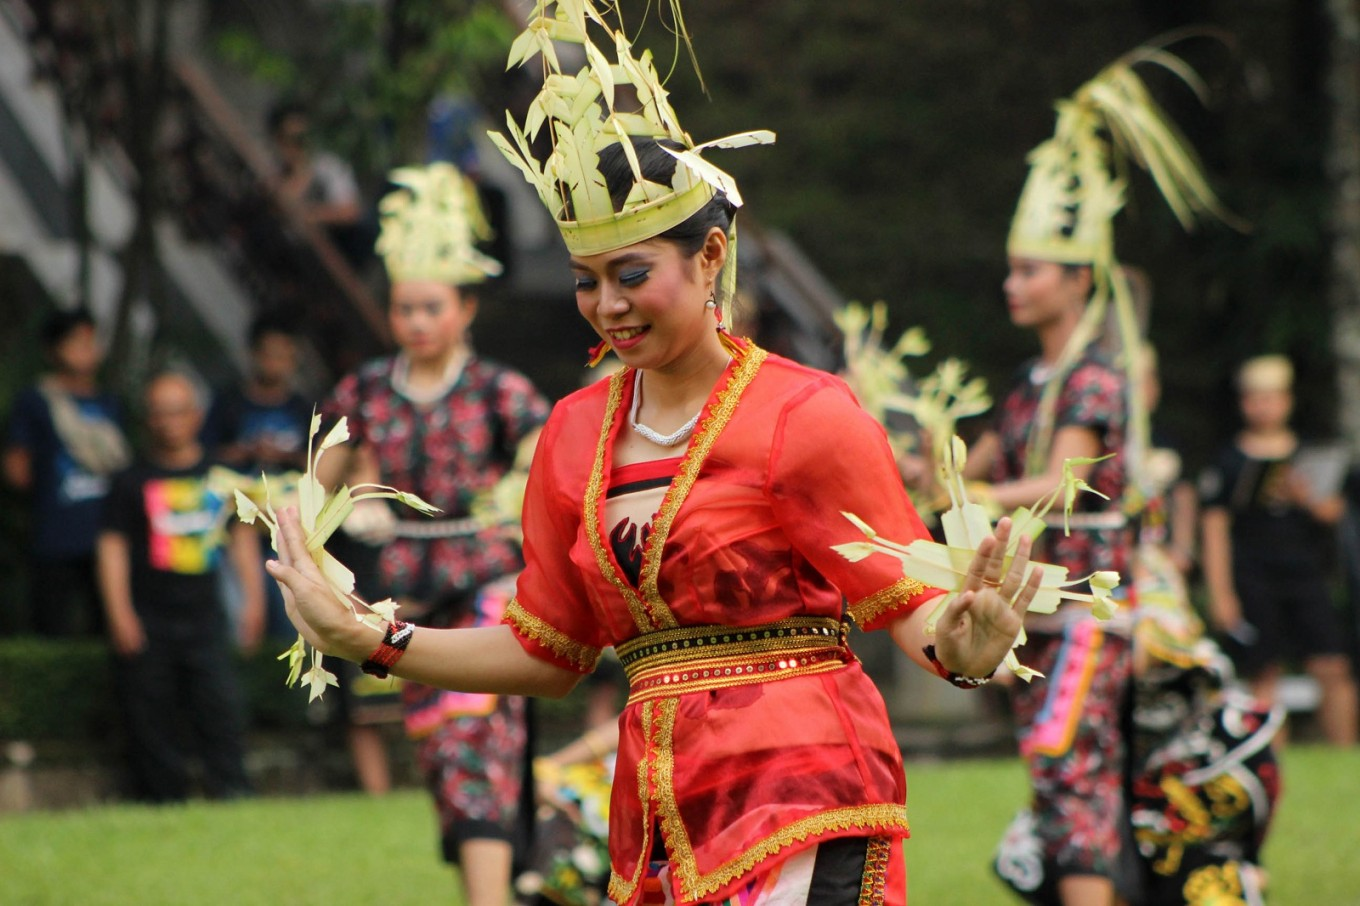 The Solo Menari event featured nearly 5,000 dancers from across Indonesia.